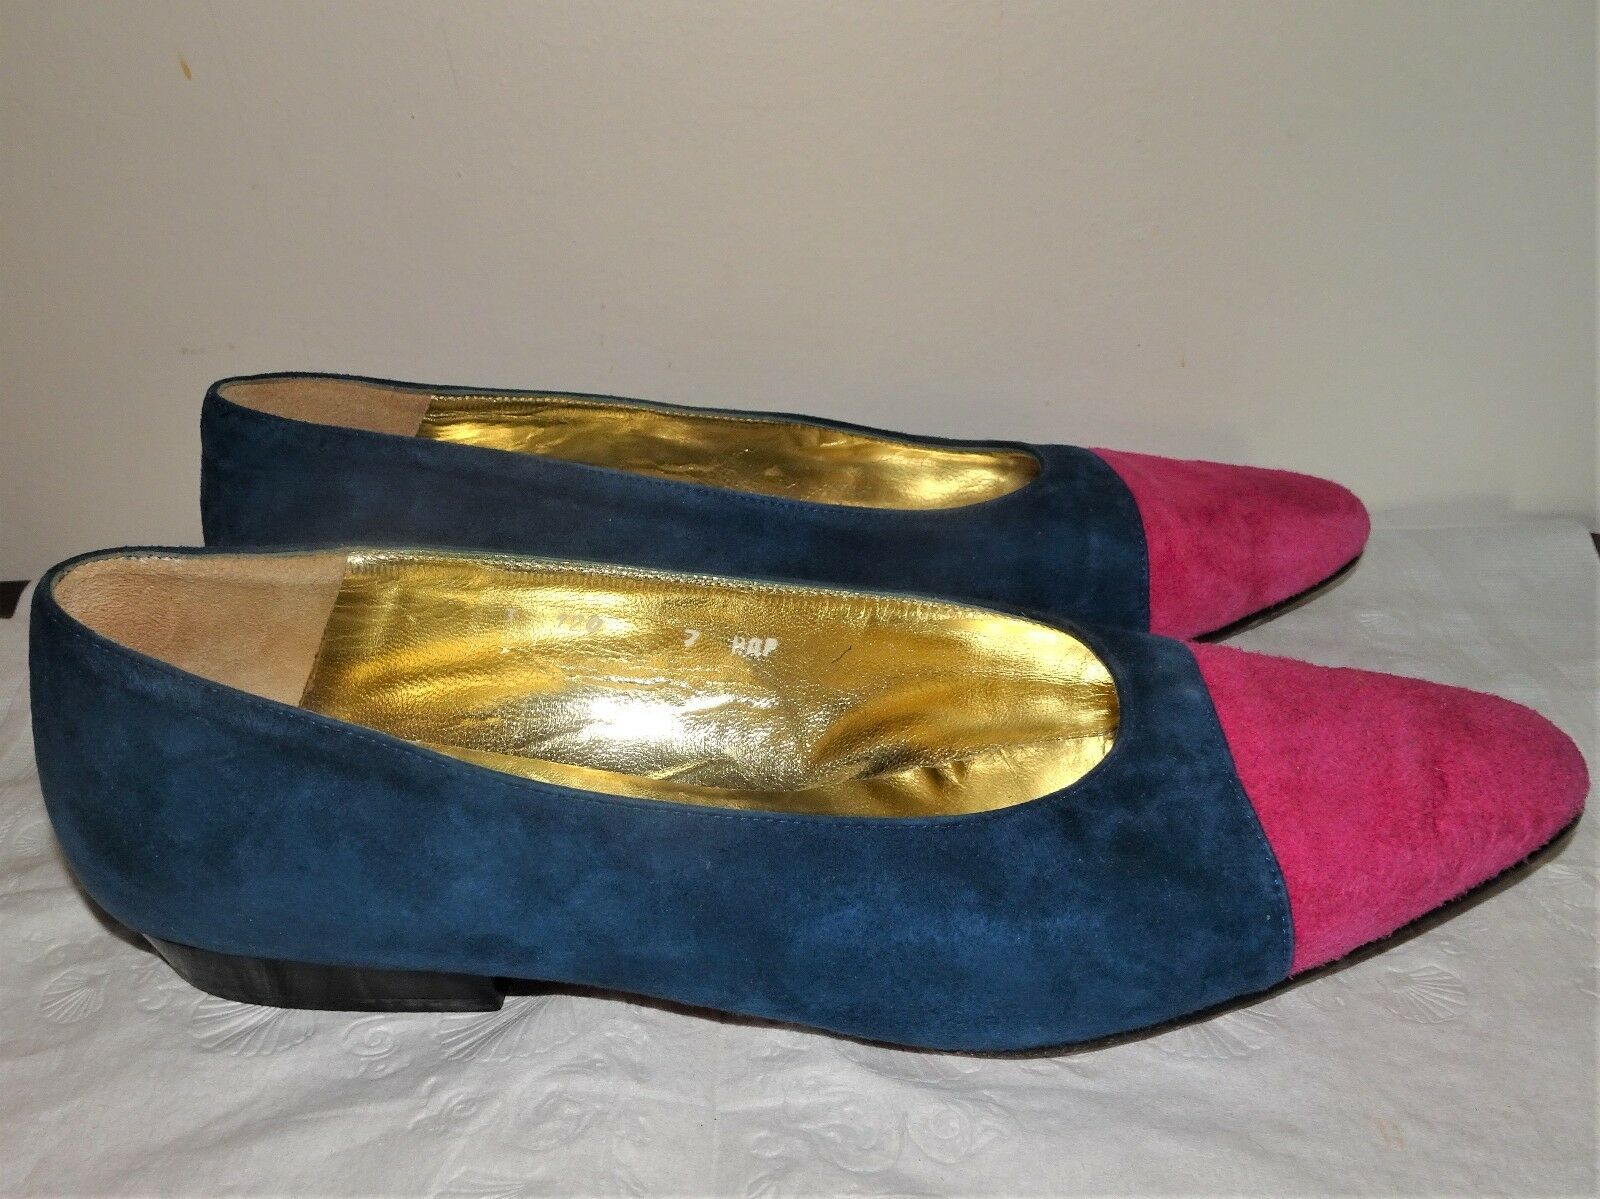 ST JOHN TONE MADE IN ITALY TWO TONE JOHN POINTED TOE  SUEDE Schuhe SZ 7B 8985dd